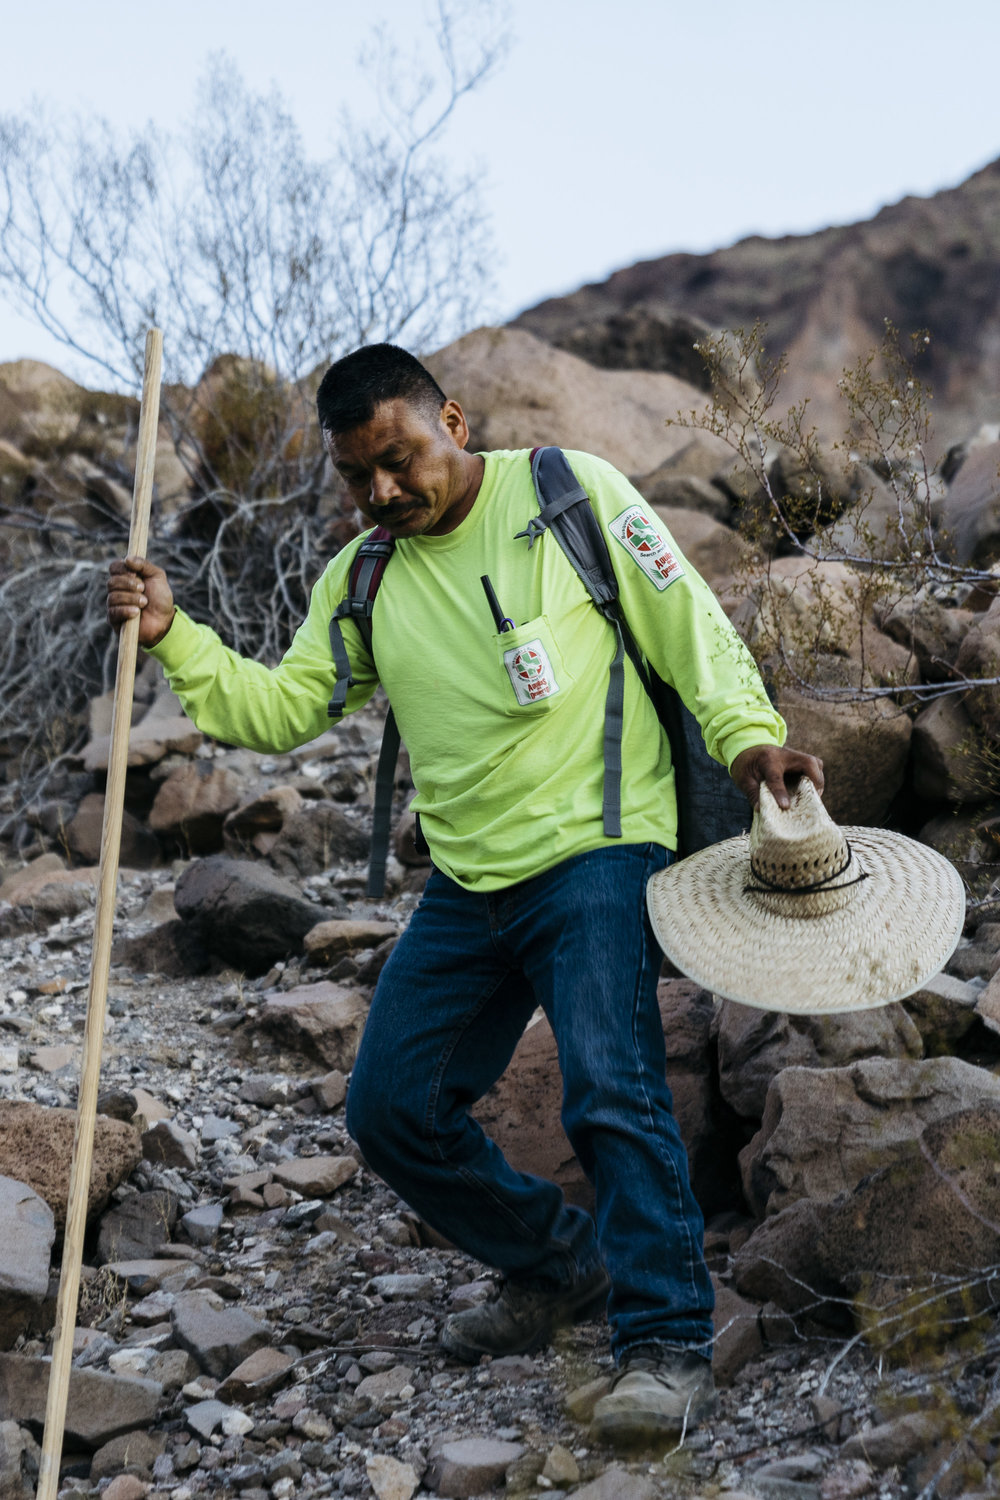 IMAGE CAPTION:  Maro Martinez, a volunteer with Aguilas Del Desierto, descends a wash in the Cabeza Prieta National Wildlife Refuge. Summer temperatures in this part of the Sonoran Desert can reach 120°F.